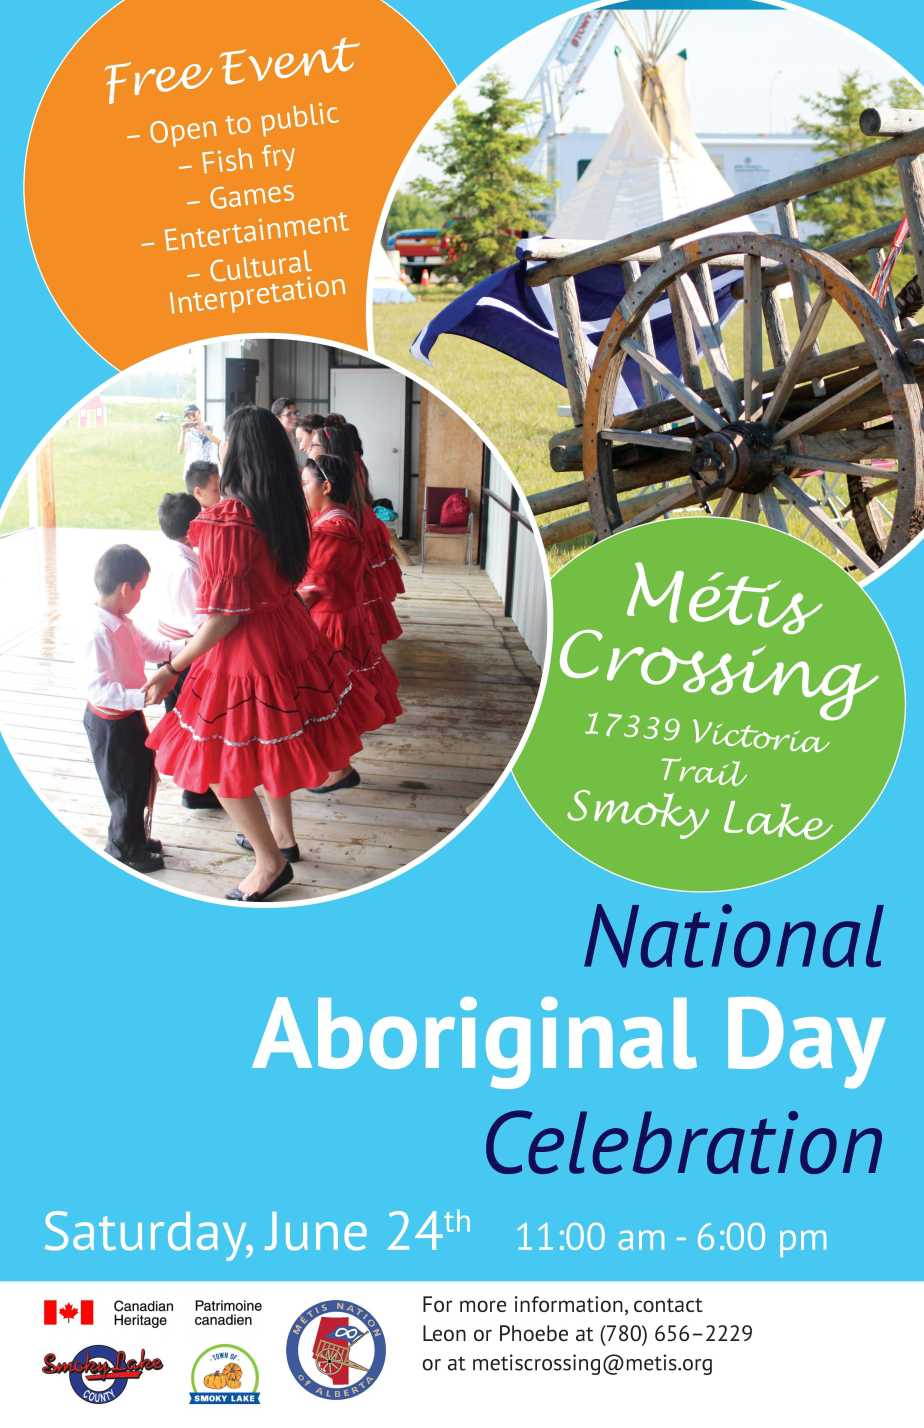 What's Next? National Aboriginal Days at Métis Crossing!